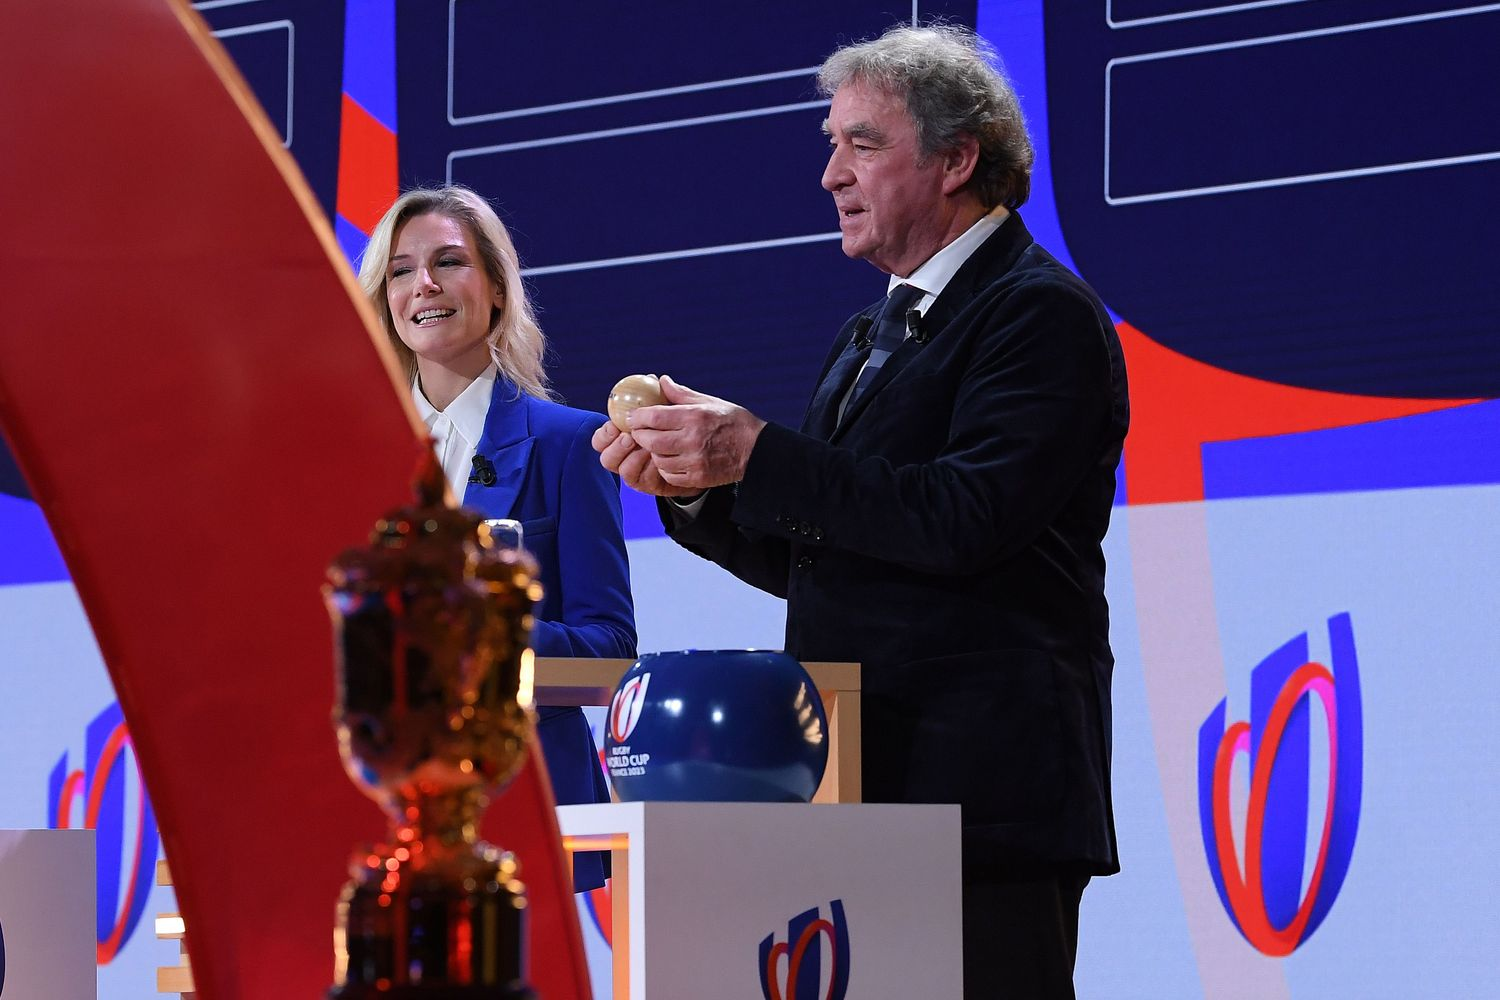 Rugby World Cup 2023 Draw